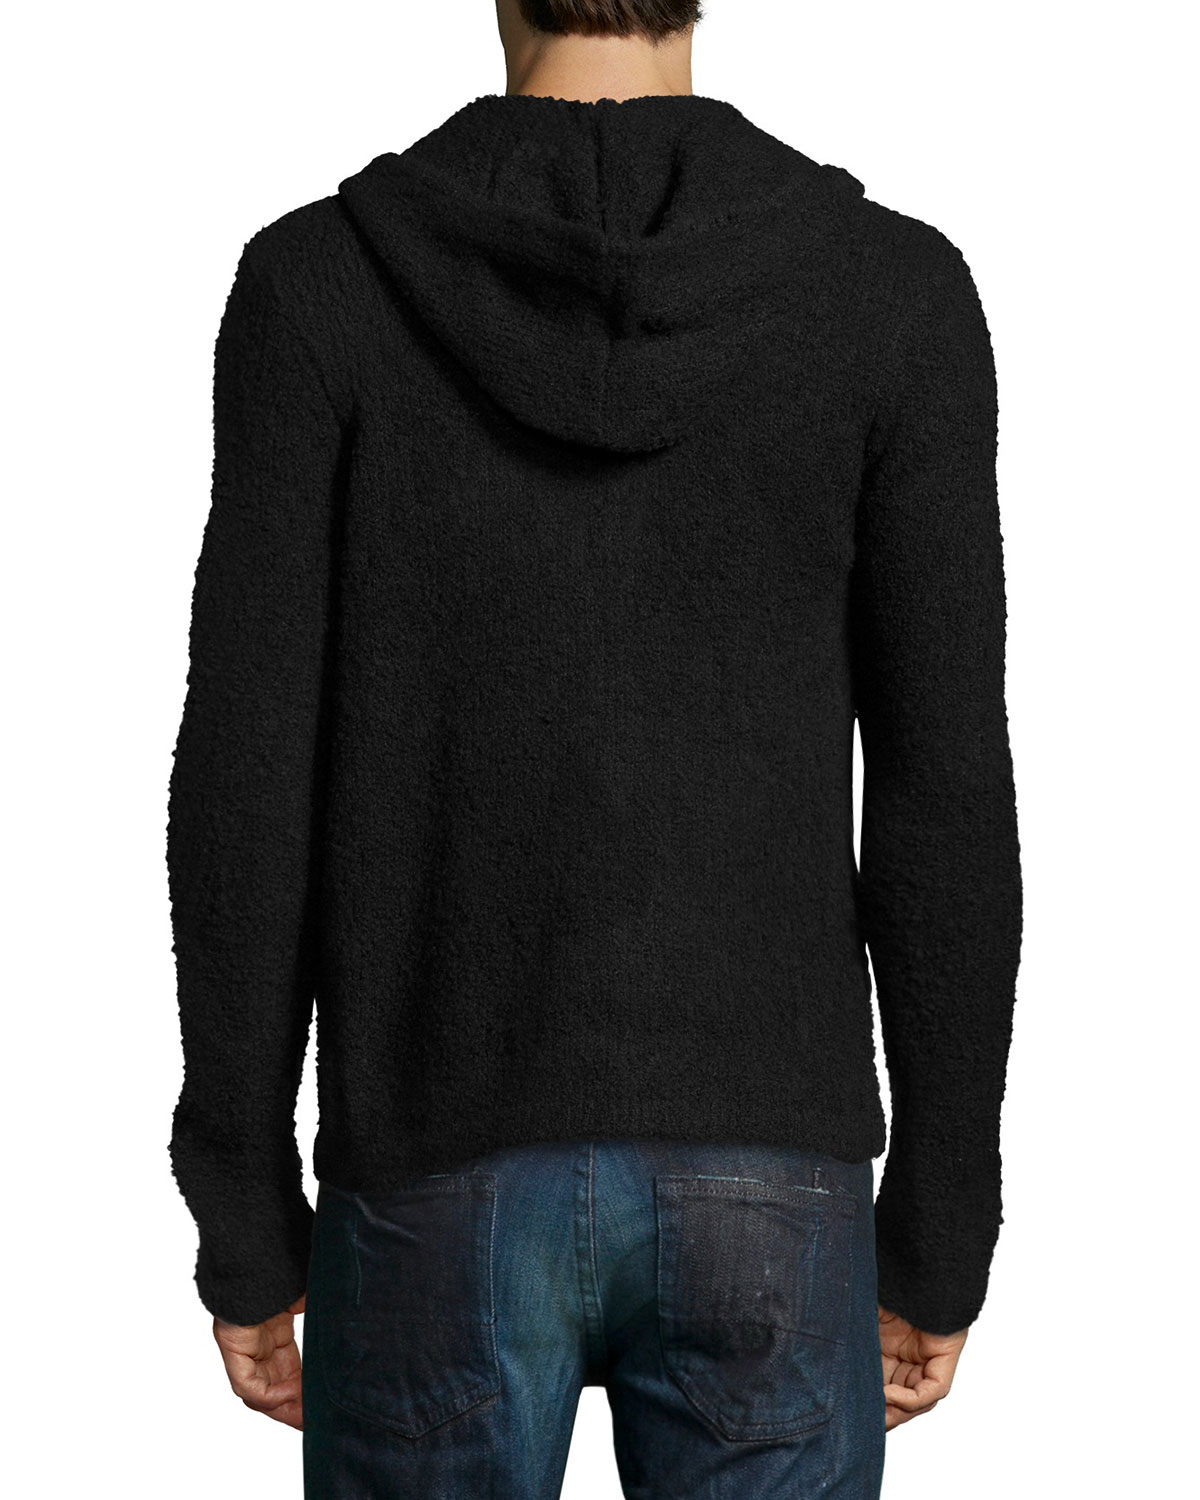 Joes jeans Wool-Blend Knit Zip Hoodie in Black for Men Lyst